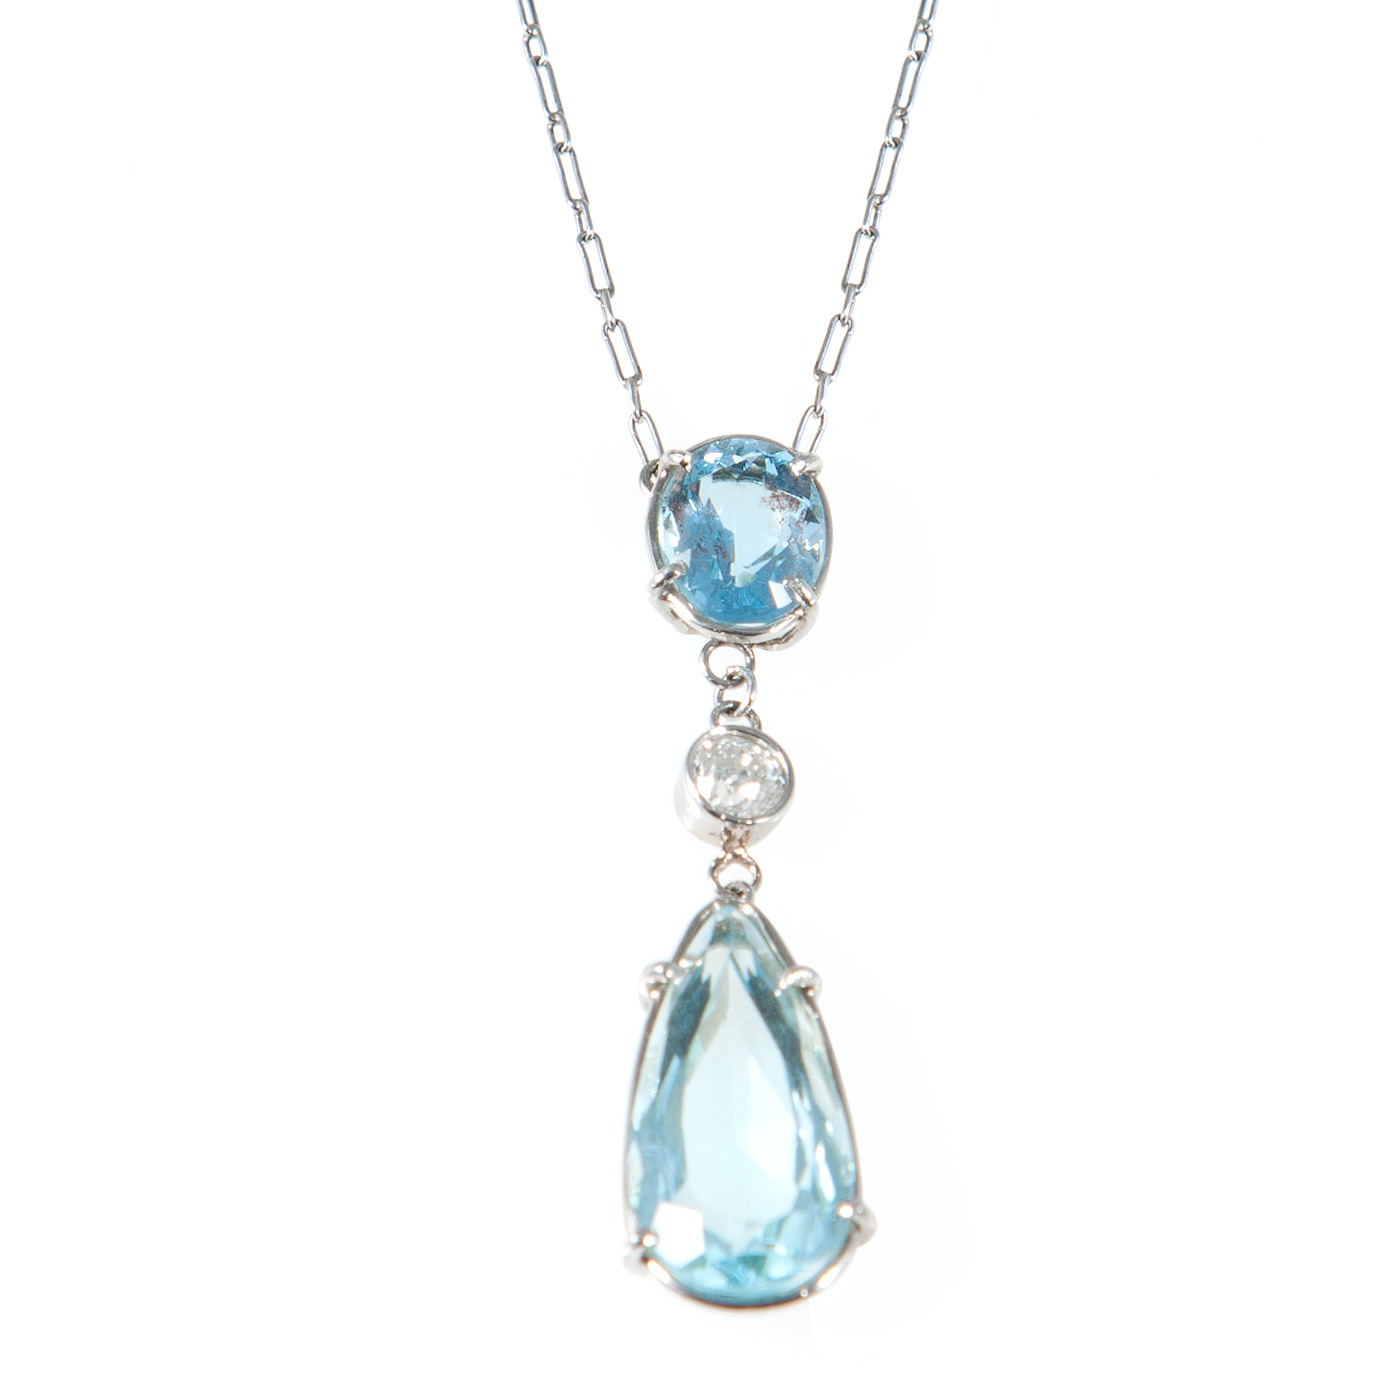 Edwardian Platinum, Aquamarine & Diamond Pendant Necklace